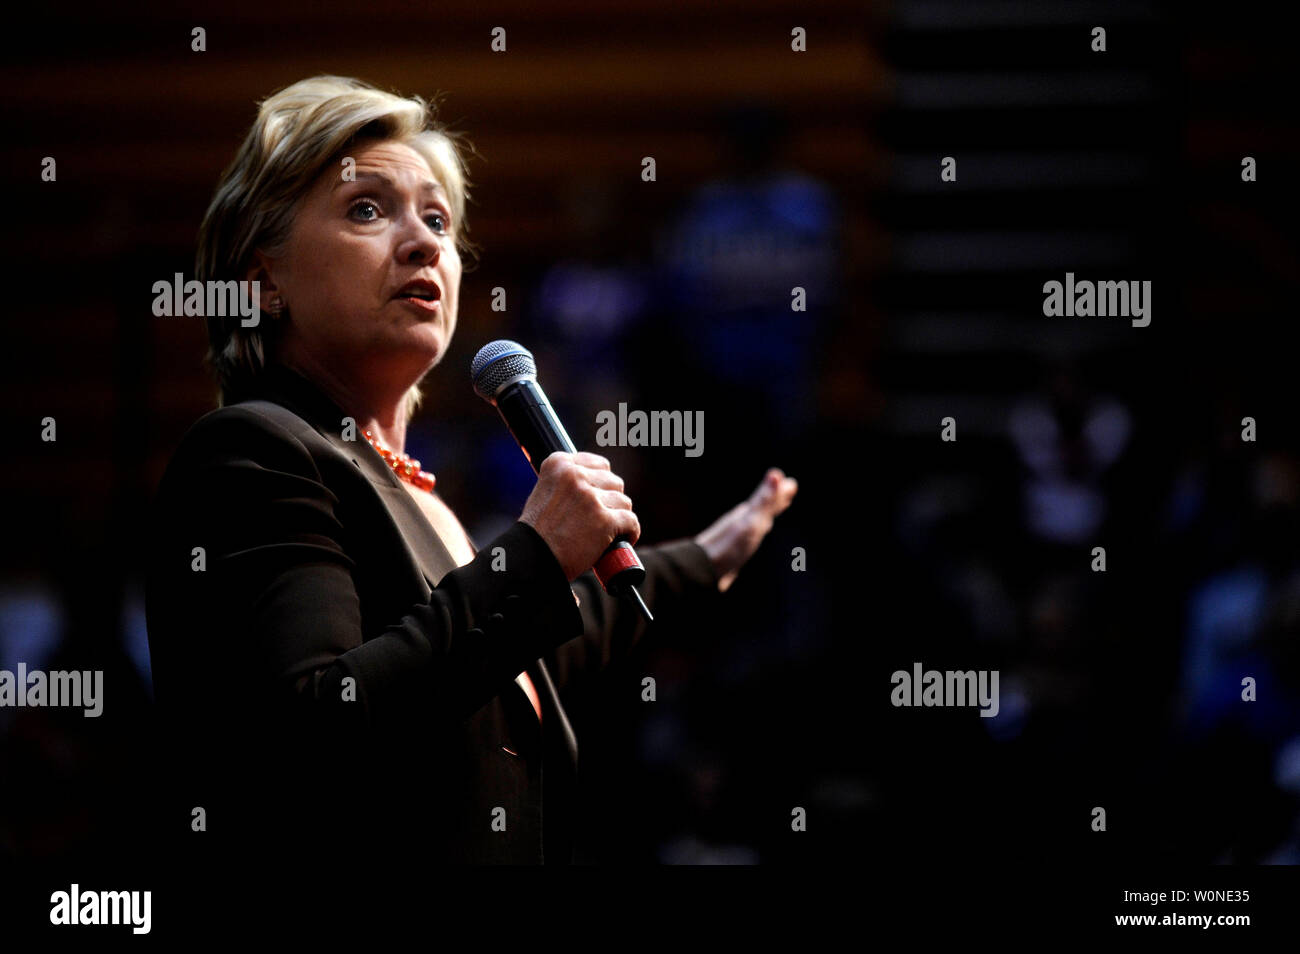 Democratic presidential candidate Sen. Hillary Clinton (D-NY) delivers remarks at a campaign rally on the eve of the West Virginia primaries at Fairmont State University in Fairmont, West Virginia on May 12, 2008. West Virginians head to the polls tomorrow in that states presidential primaries. (UPI Photo/Kevin Dietsch) Stock Photo